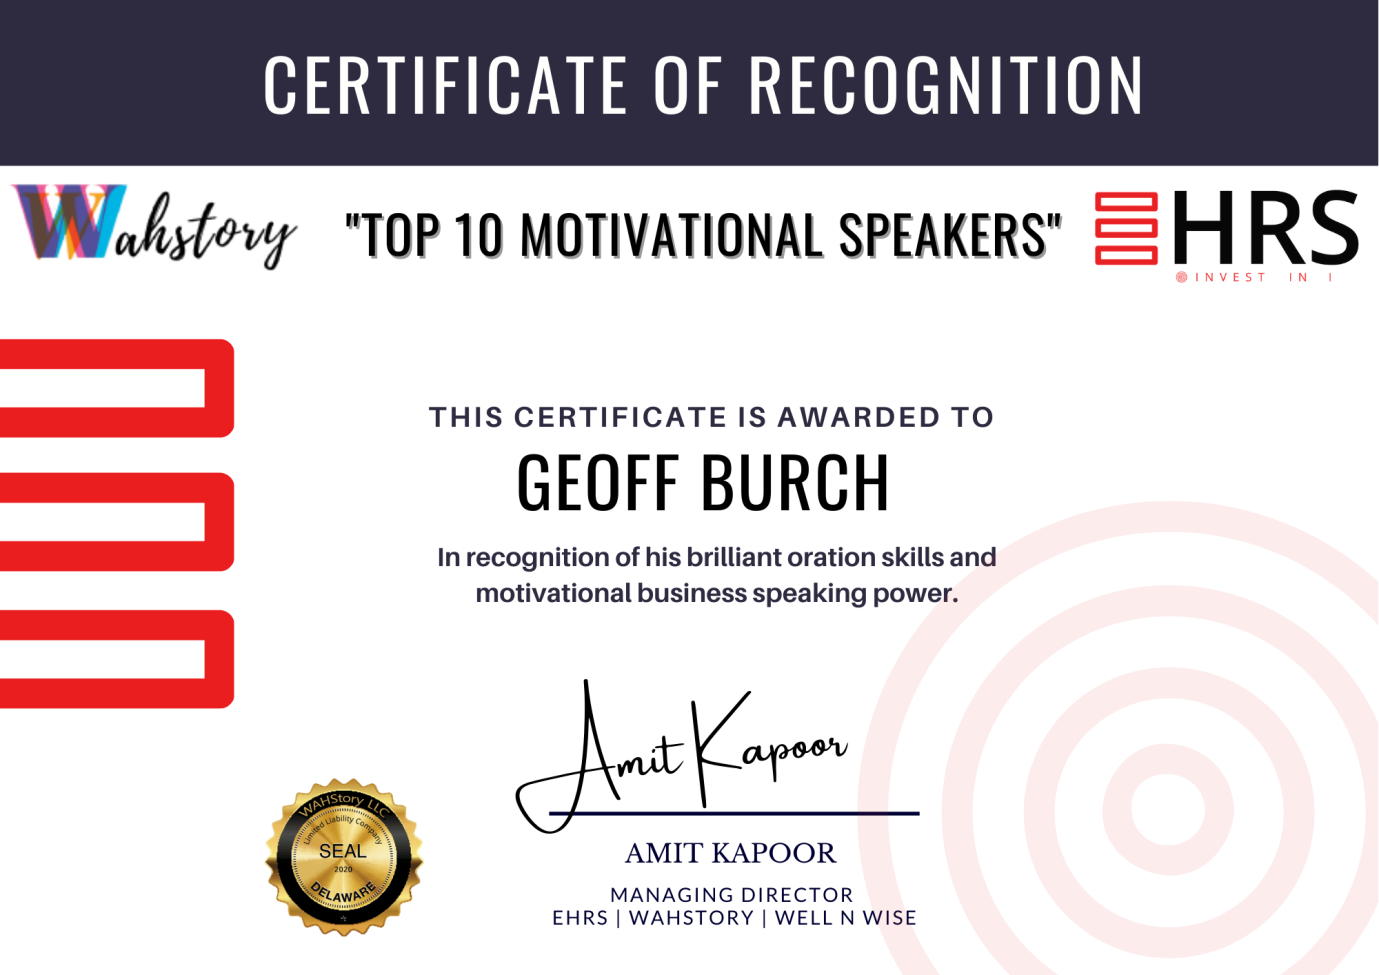 Top 10 speaker in the world